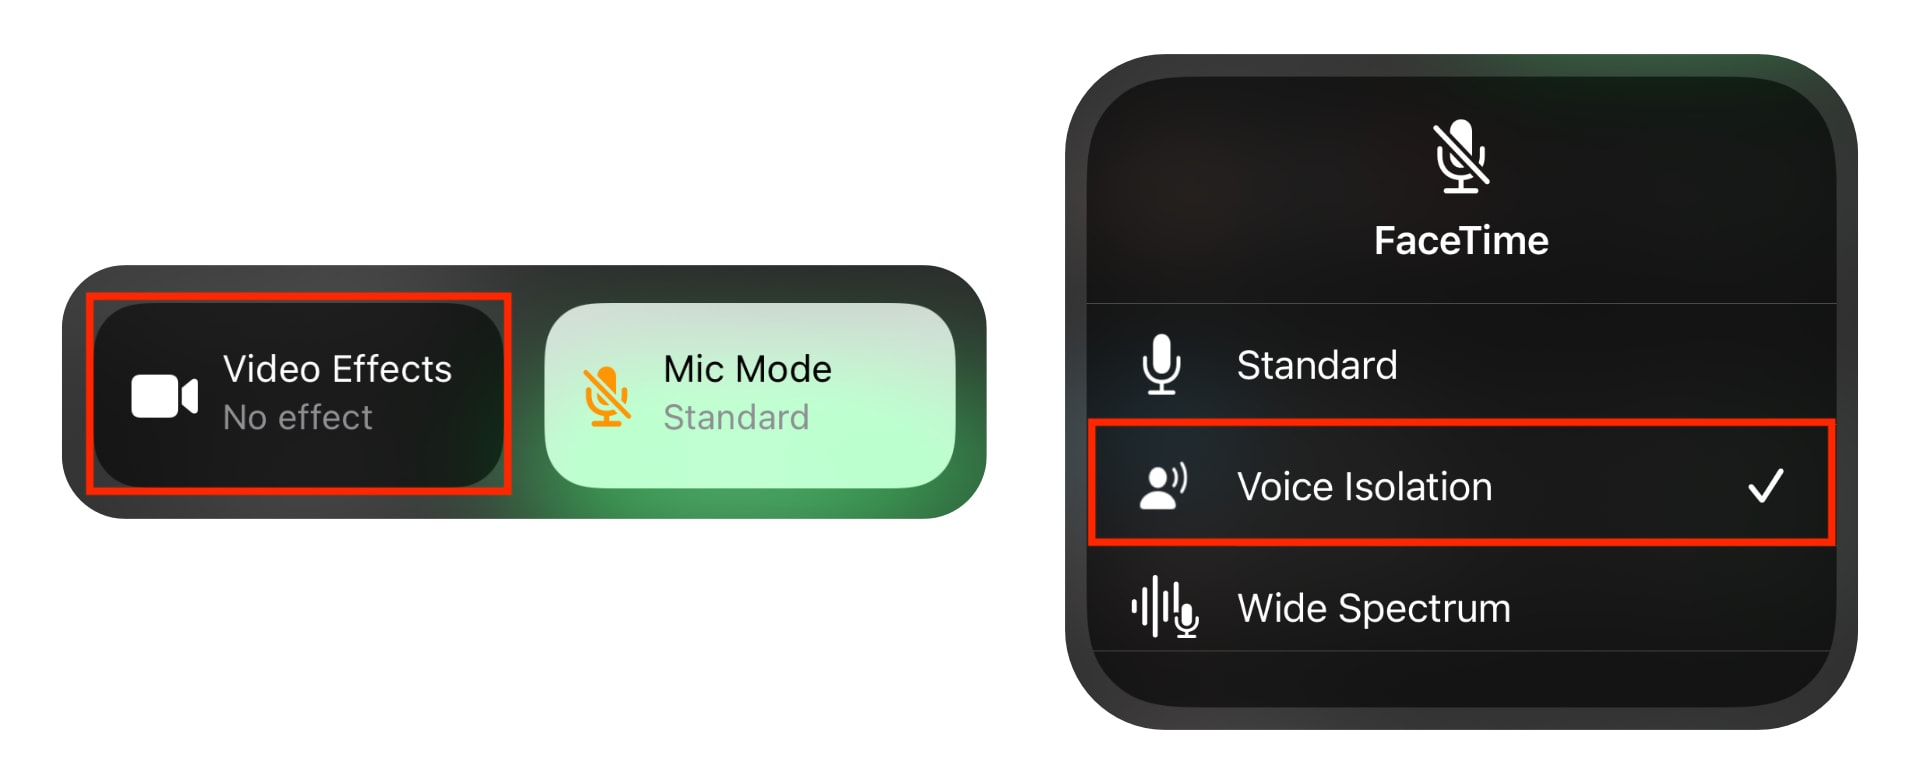 Enable voice isolation for FaceTime